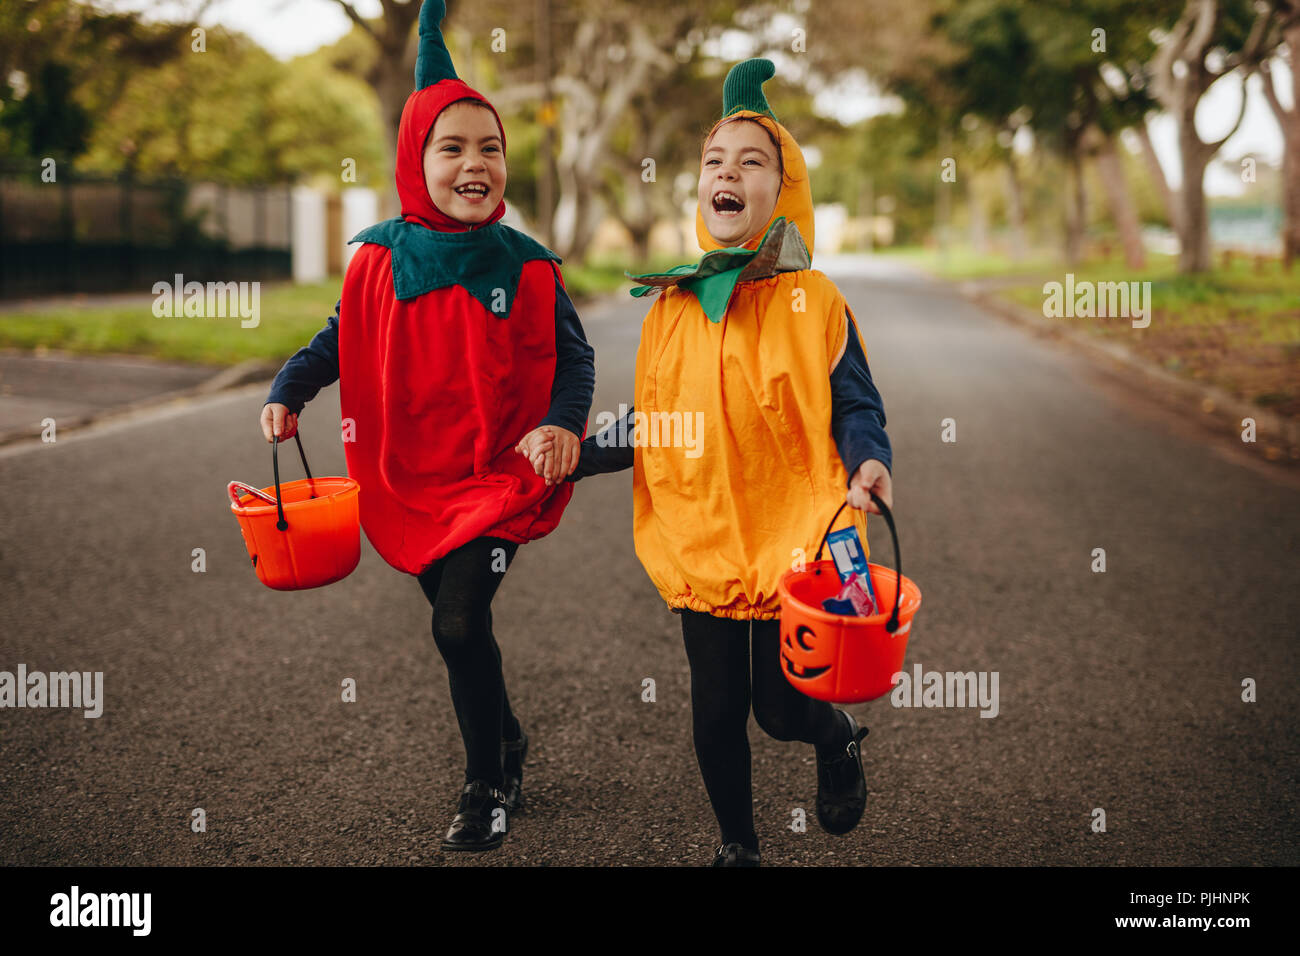 happy kids in halloween costume trick or treating outdoors two little girls in halloween costume with buckets walking outdoors on the street